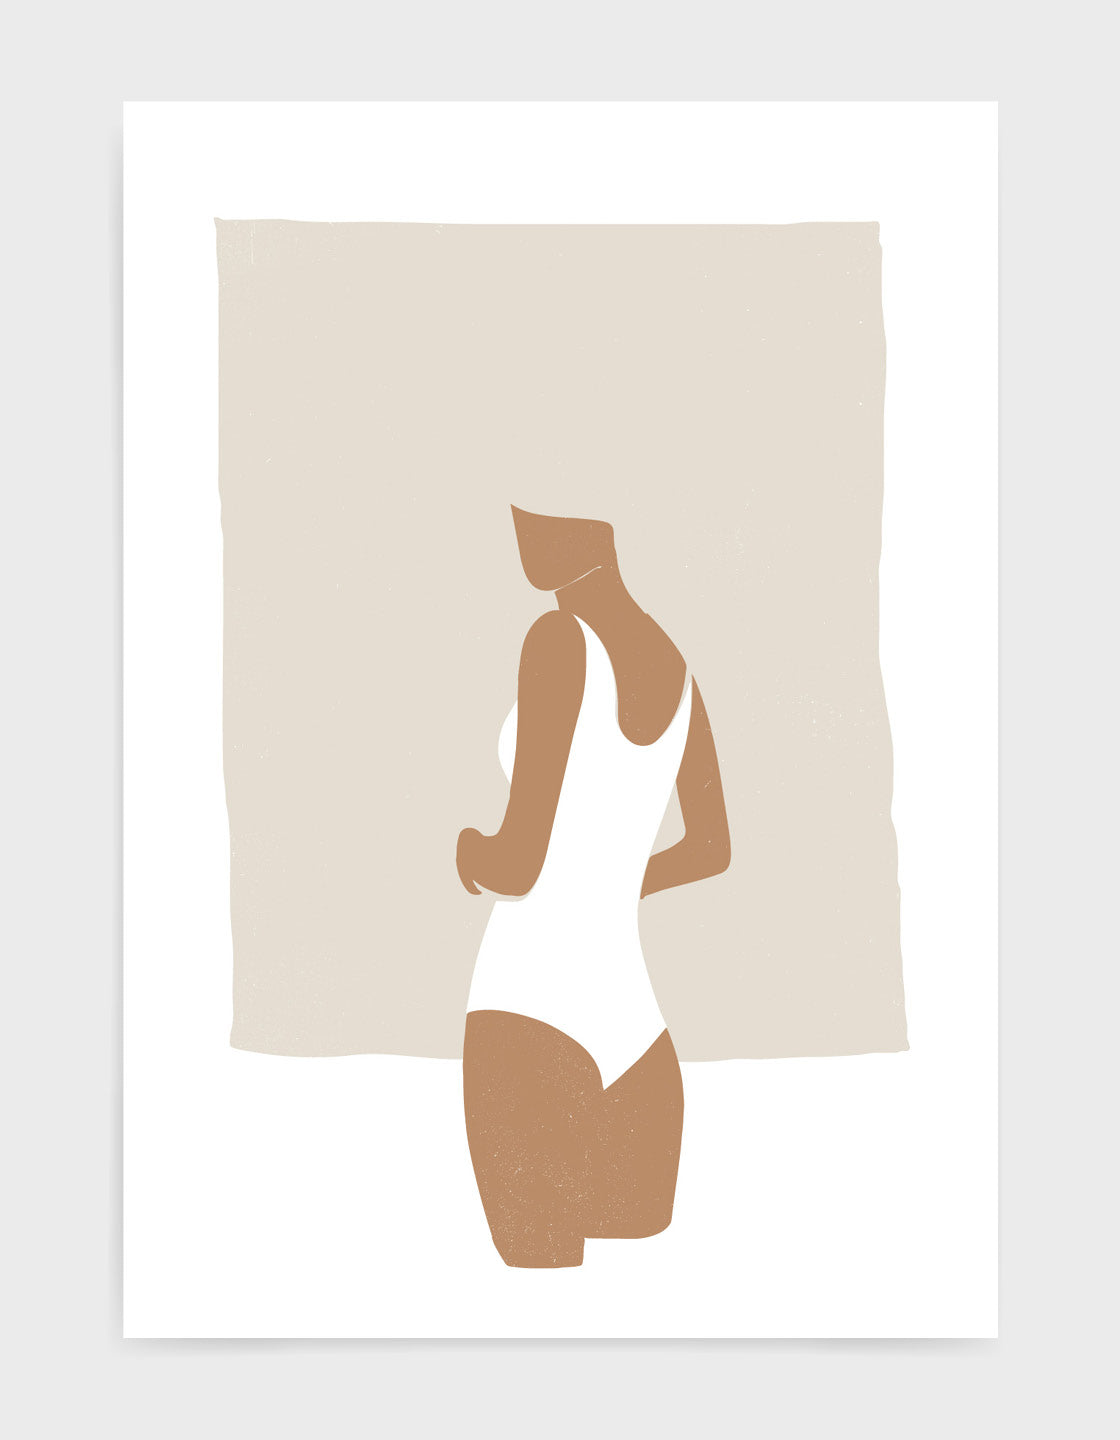 Abstract female figure art print of woman in white swimsuit